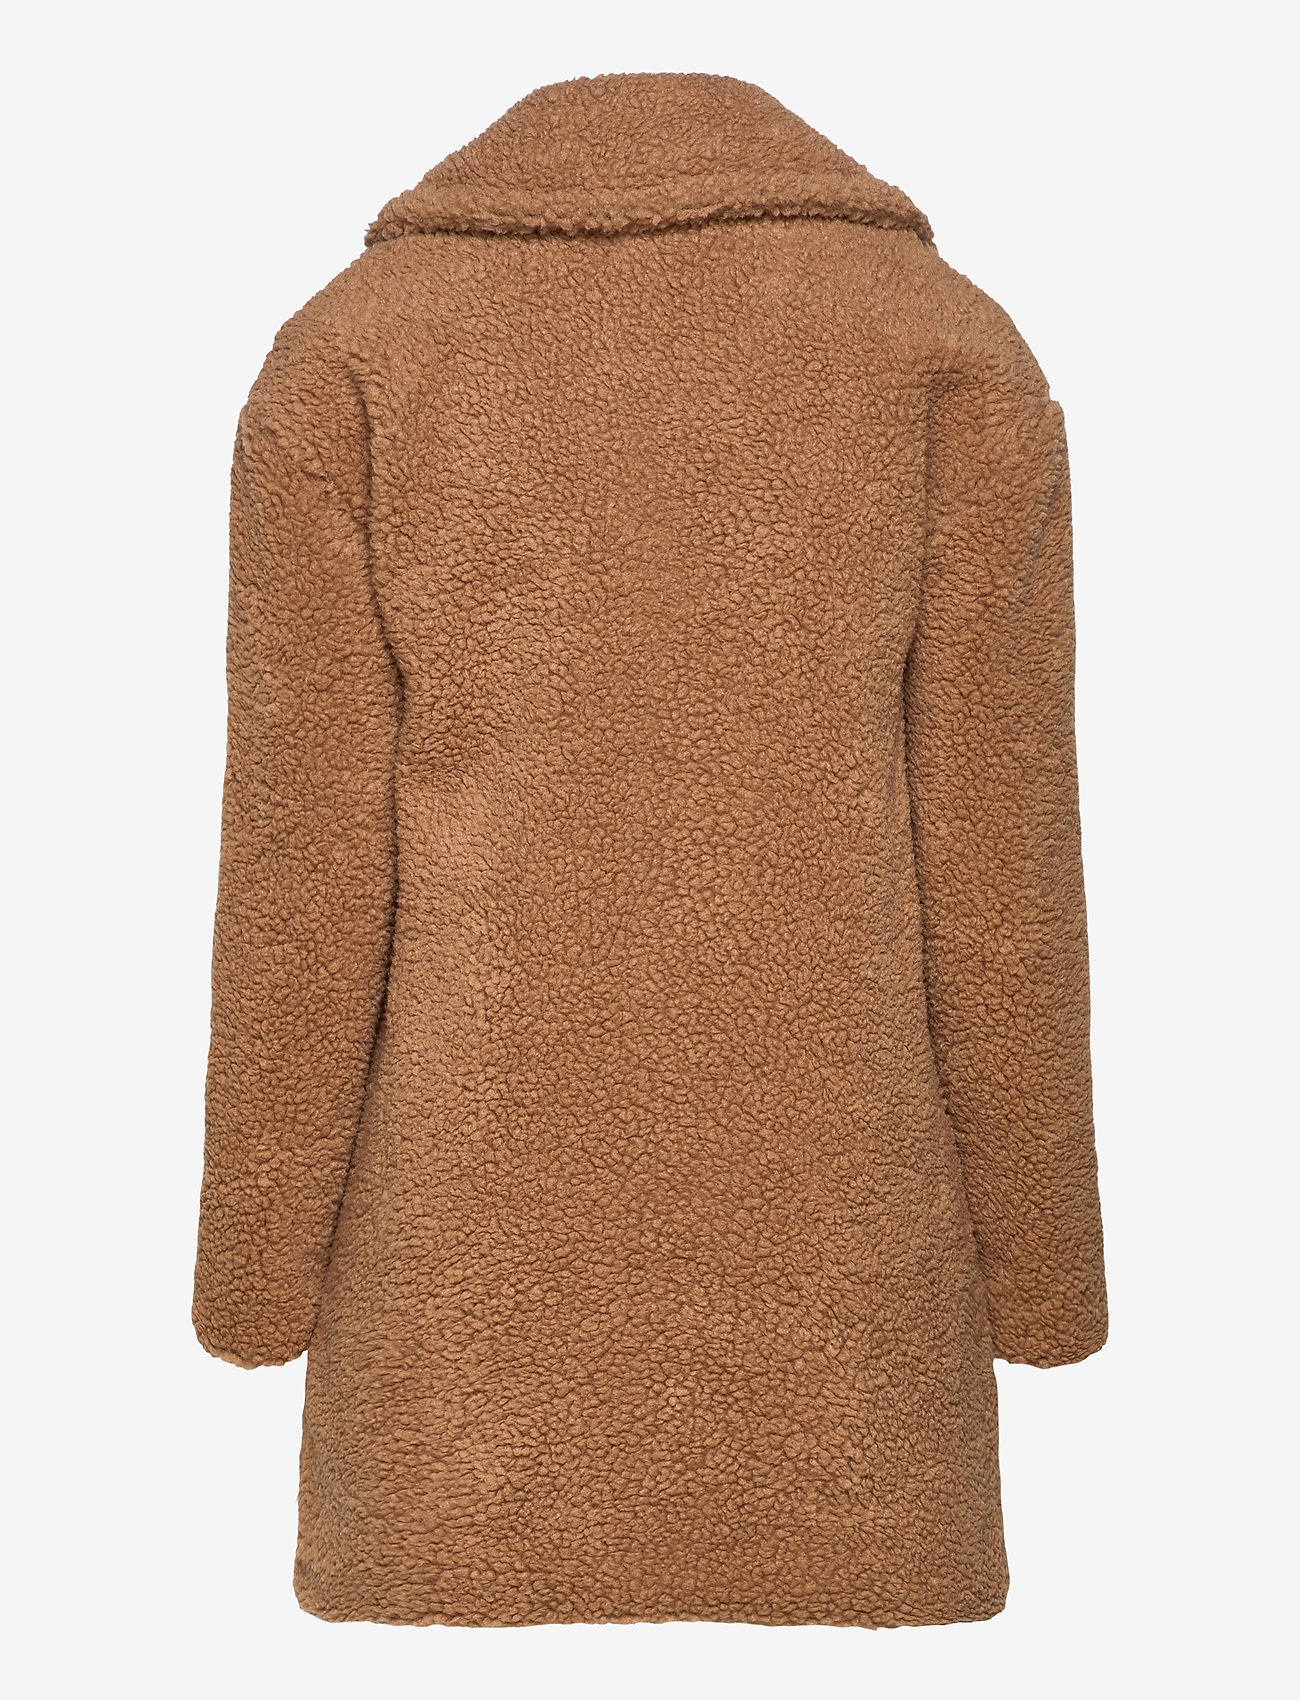 Abercrombie & Fitch - ANF WOMENS OUTERWEAR - faux fur - light brown dd - 1